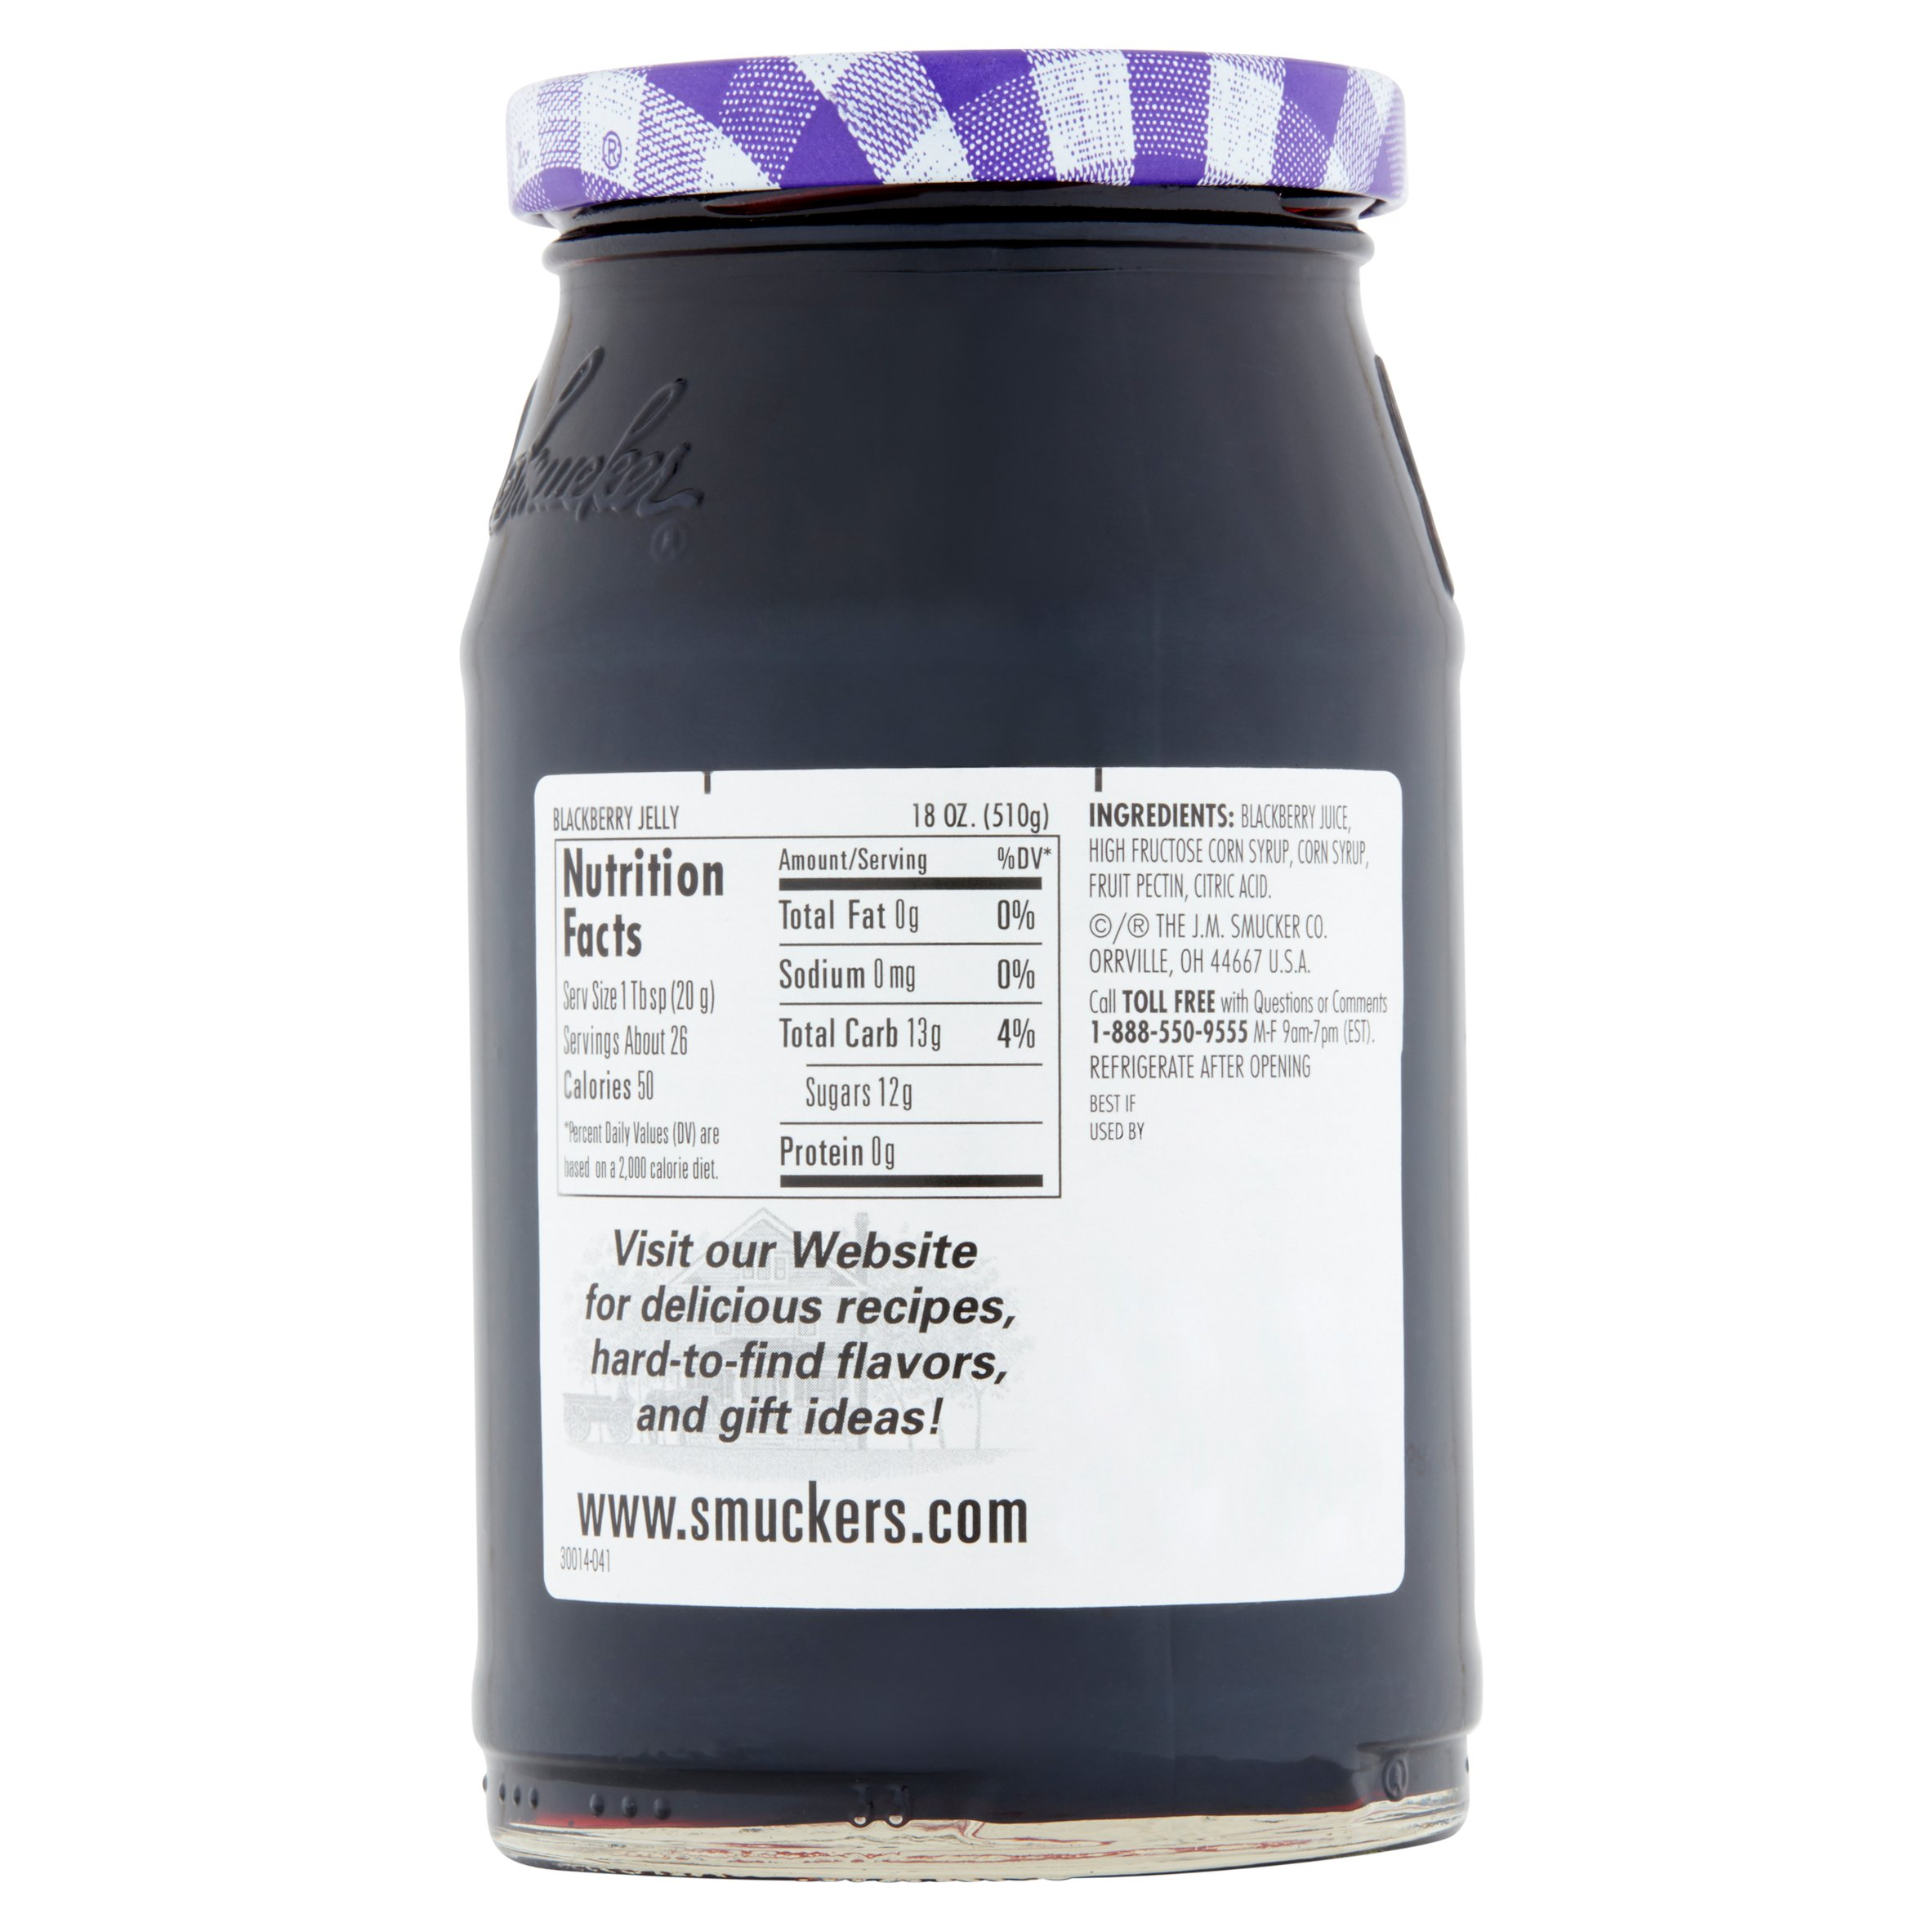 Smucker's: Blackberry Jelly, 18 Oz